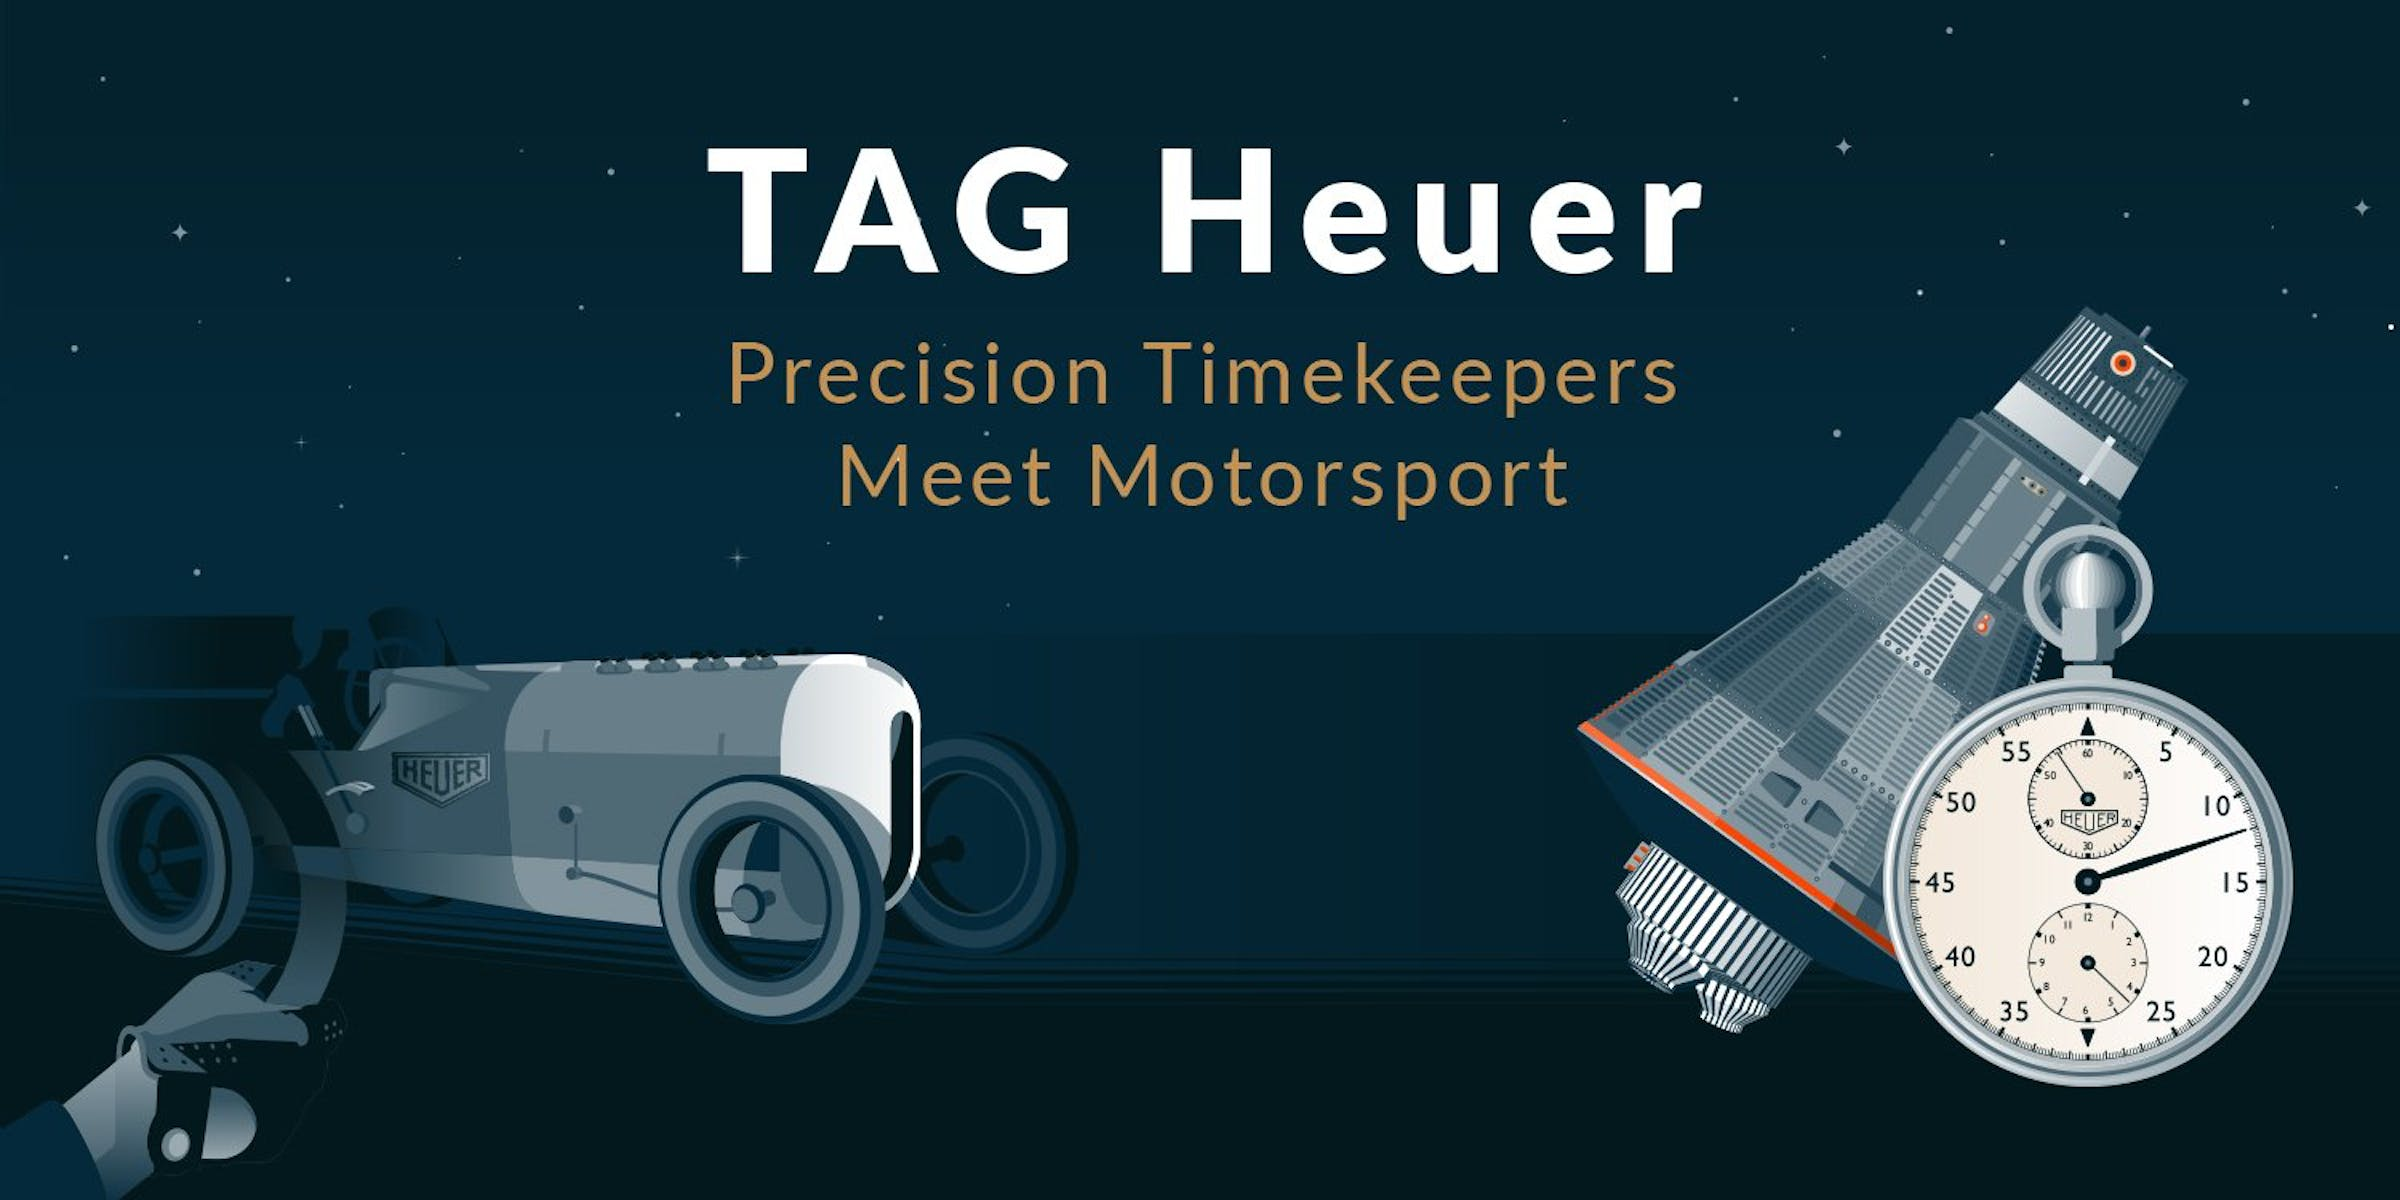 TAG Heuer: Precision Timekeepers Meet Motorsport